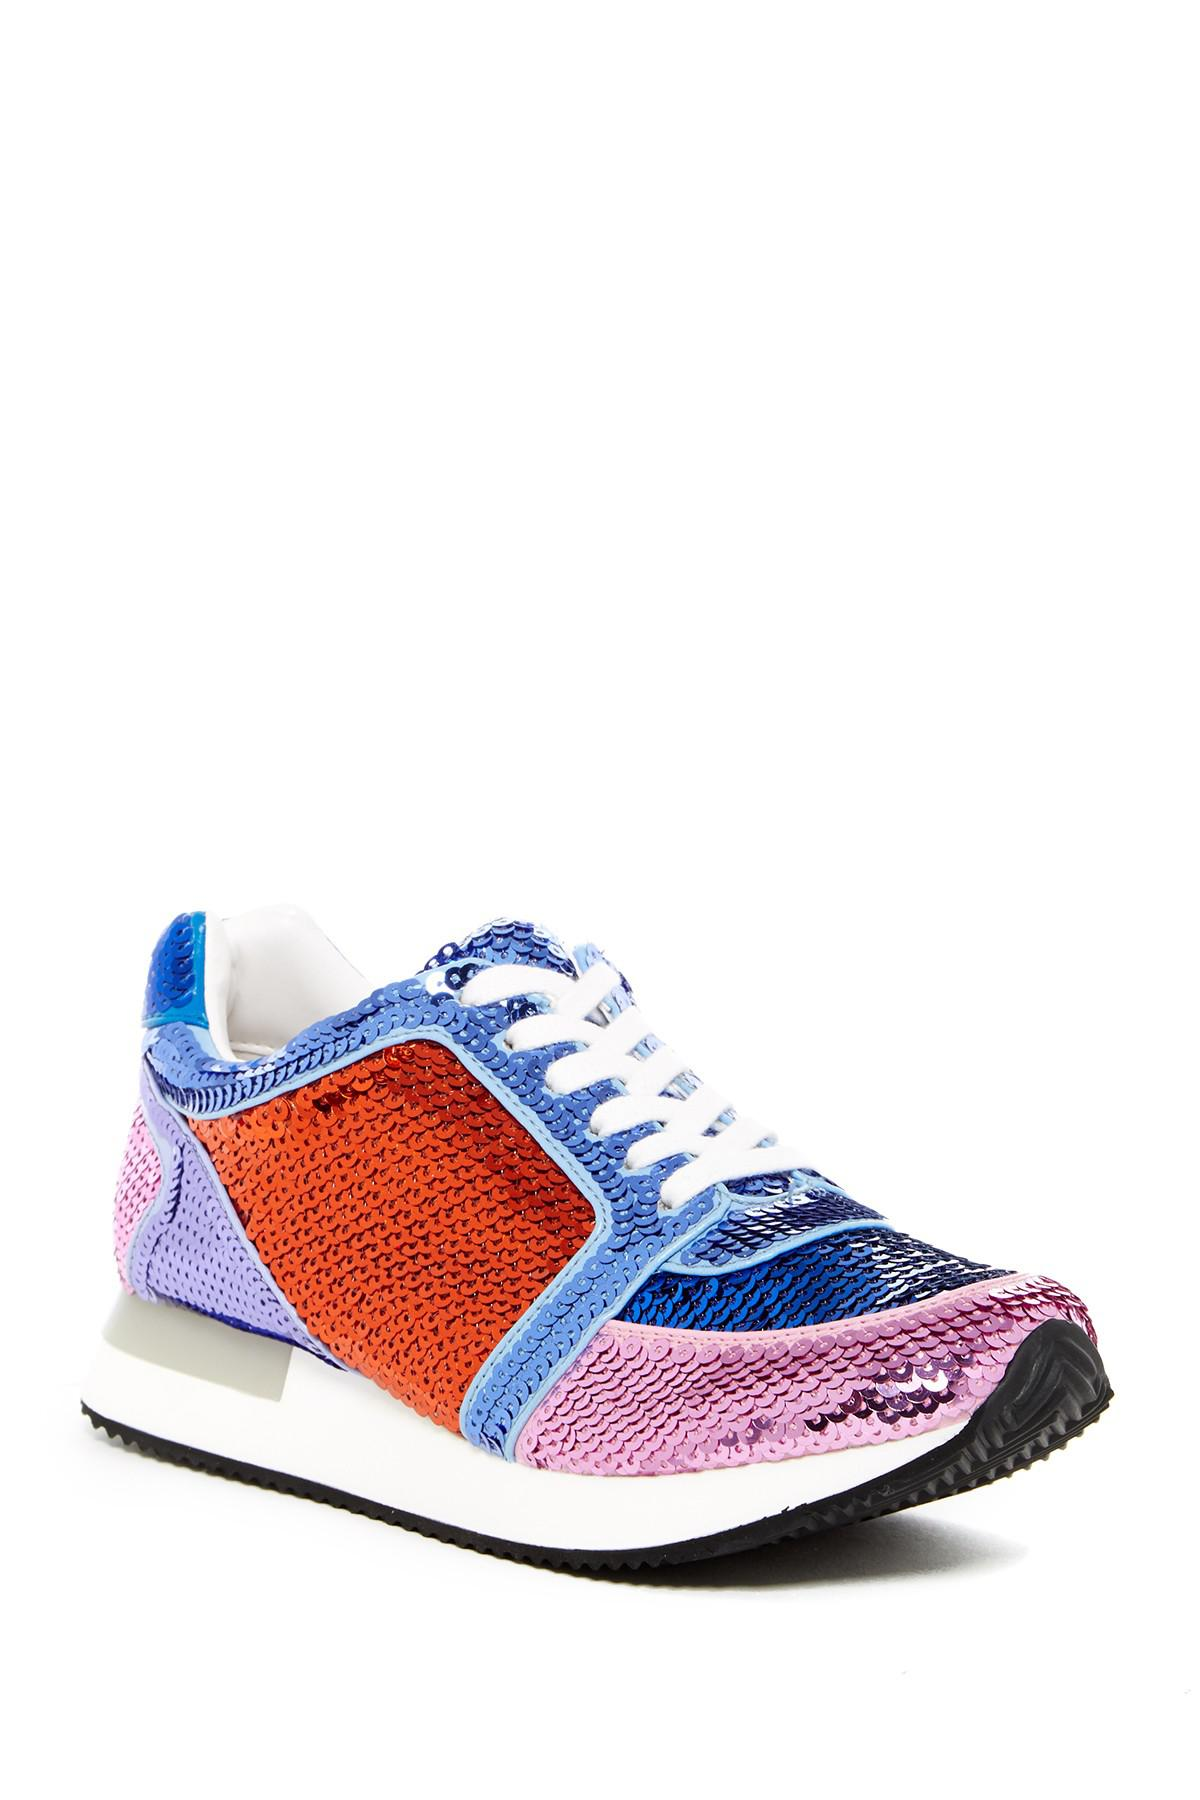 Katy Perry The Lena Sequin Sneaker in